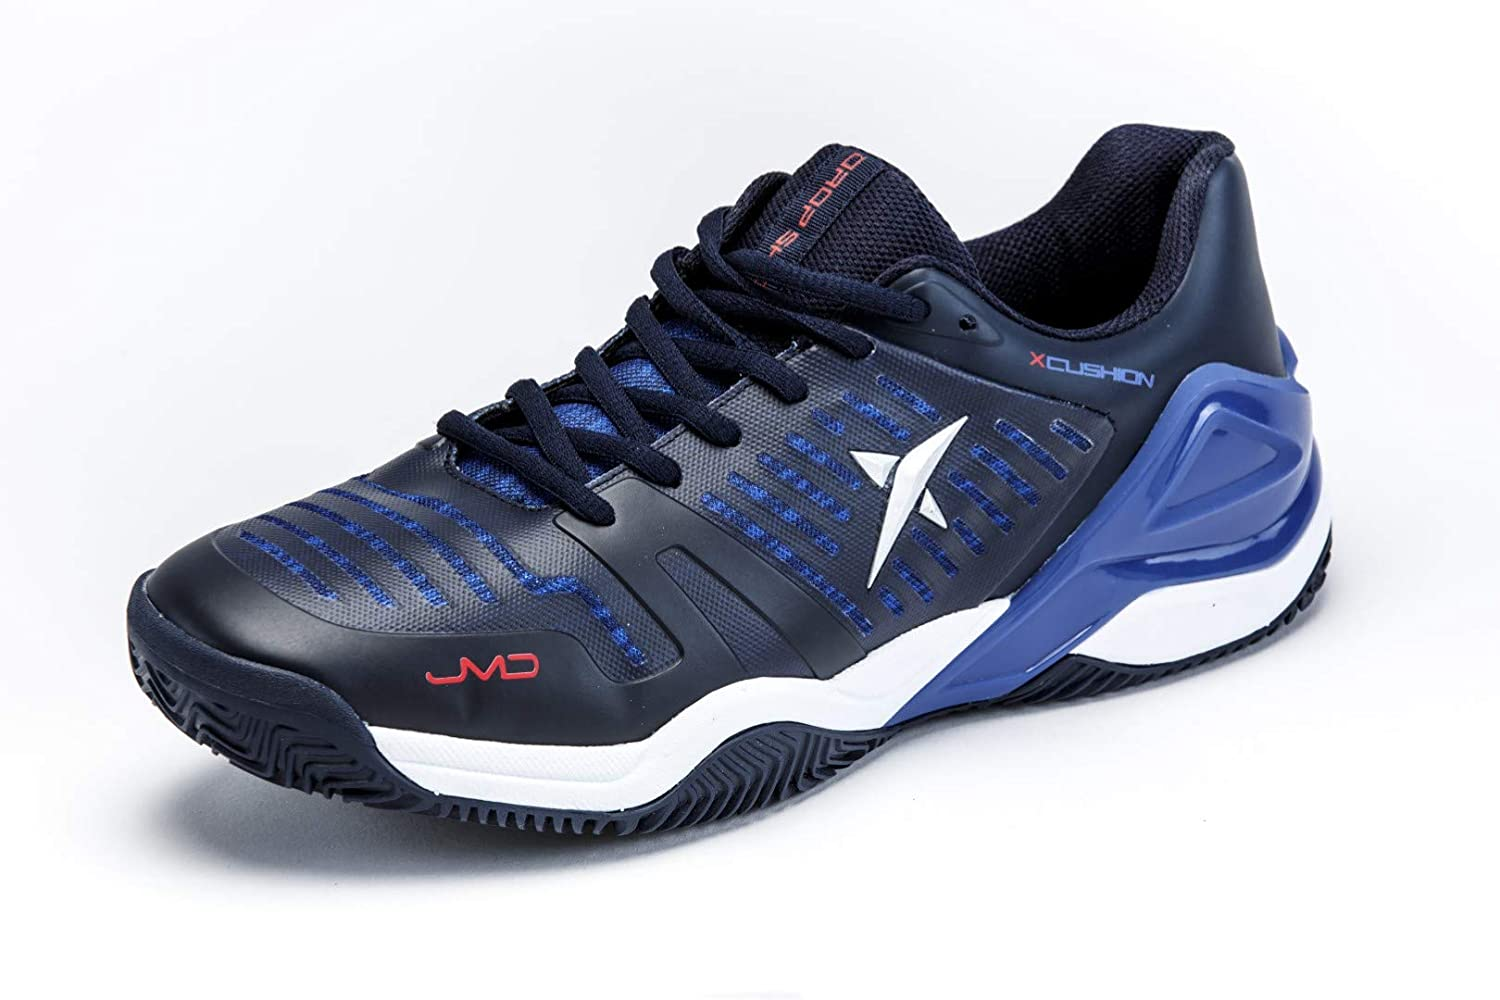 DROP SHOT Zapatilas Heritage XT